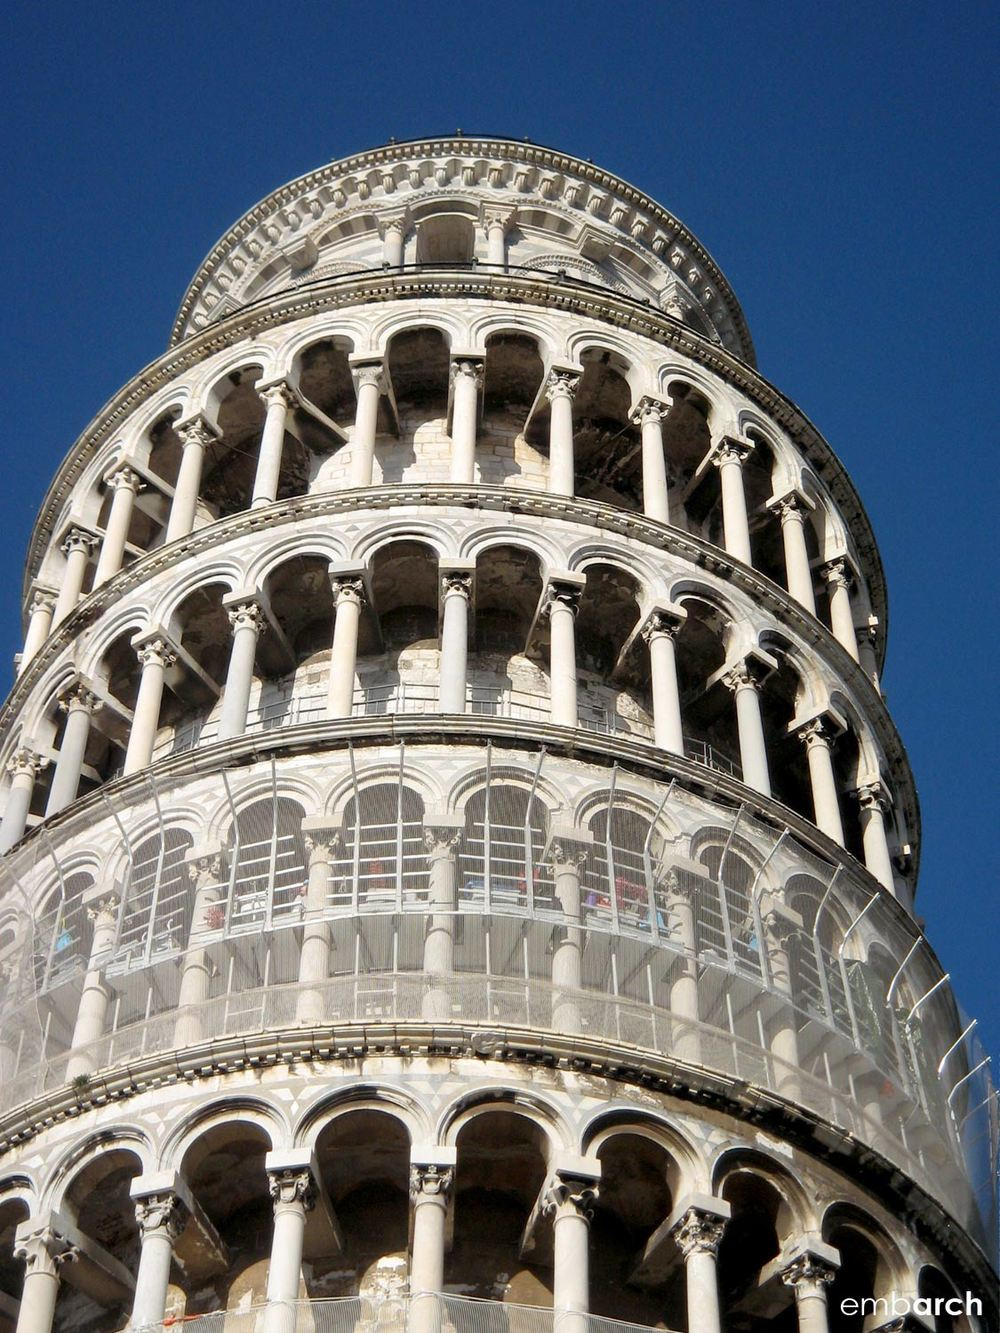 "The bell tower at the Piazza del Duomo in Pisa, better known as the ""Leaning Tower of Pisa."""